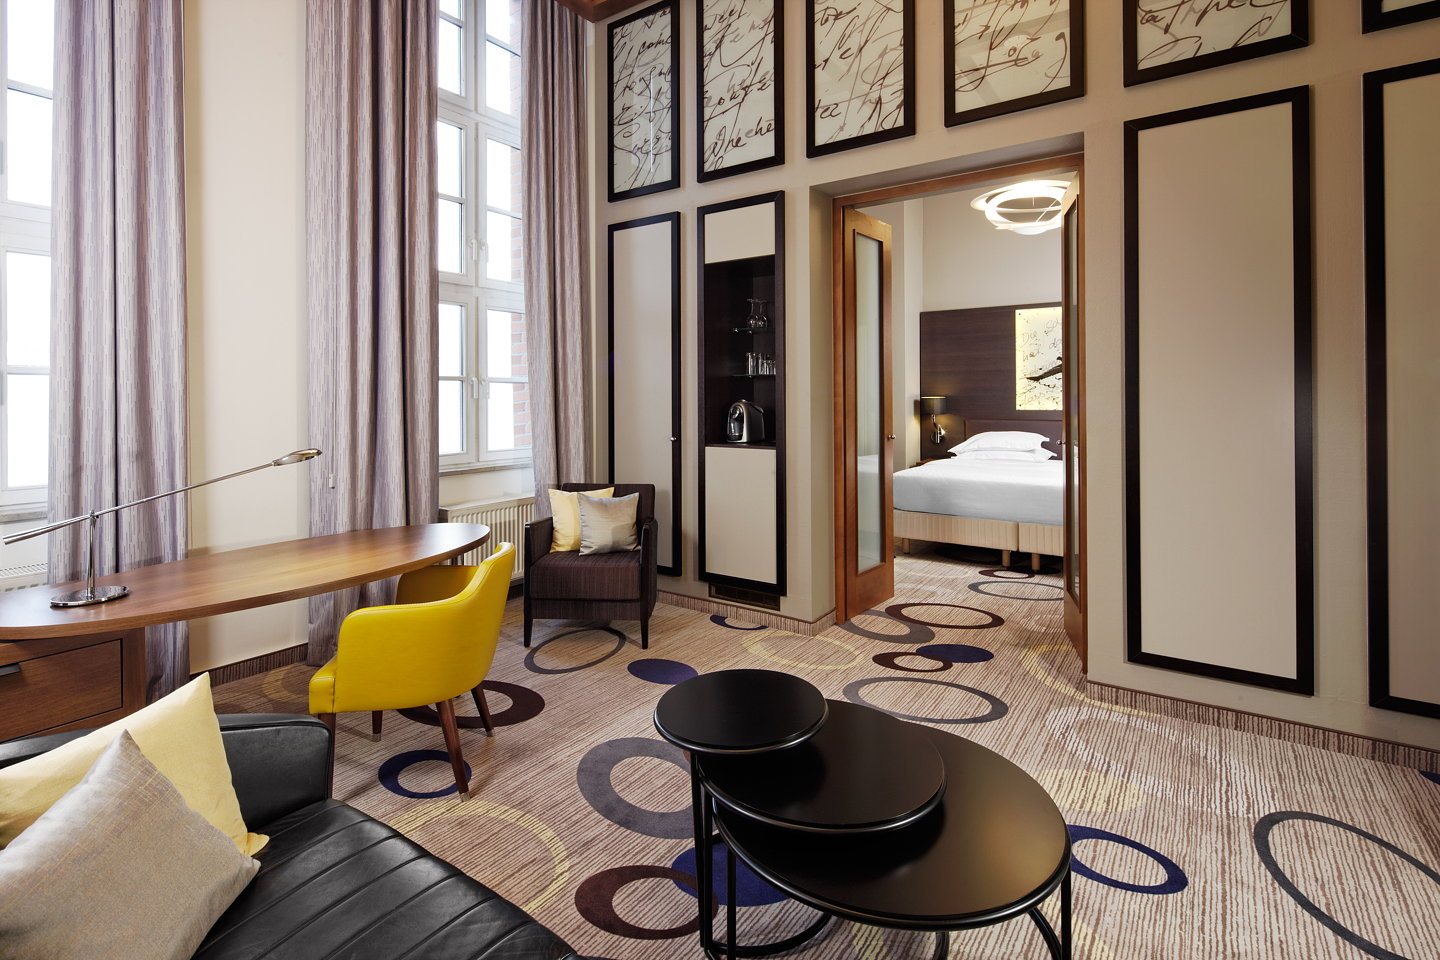 Resultado de imagem para joi design innenarchitekten Top deutschsprachige Innenarchitekten in Instagram Sheraton Hanover Pelikan Guestrooms by JOI Design 02 gallery